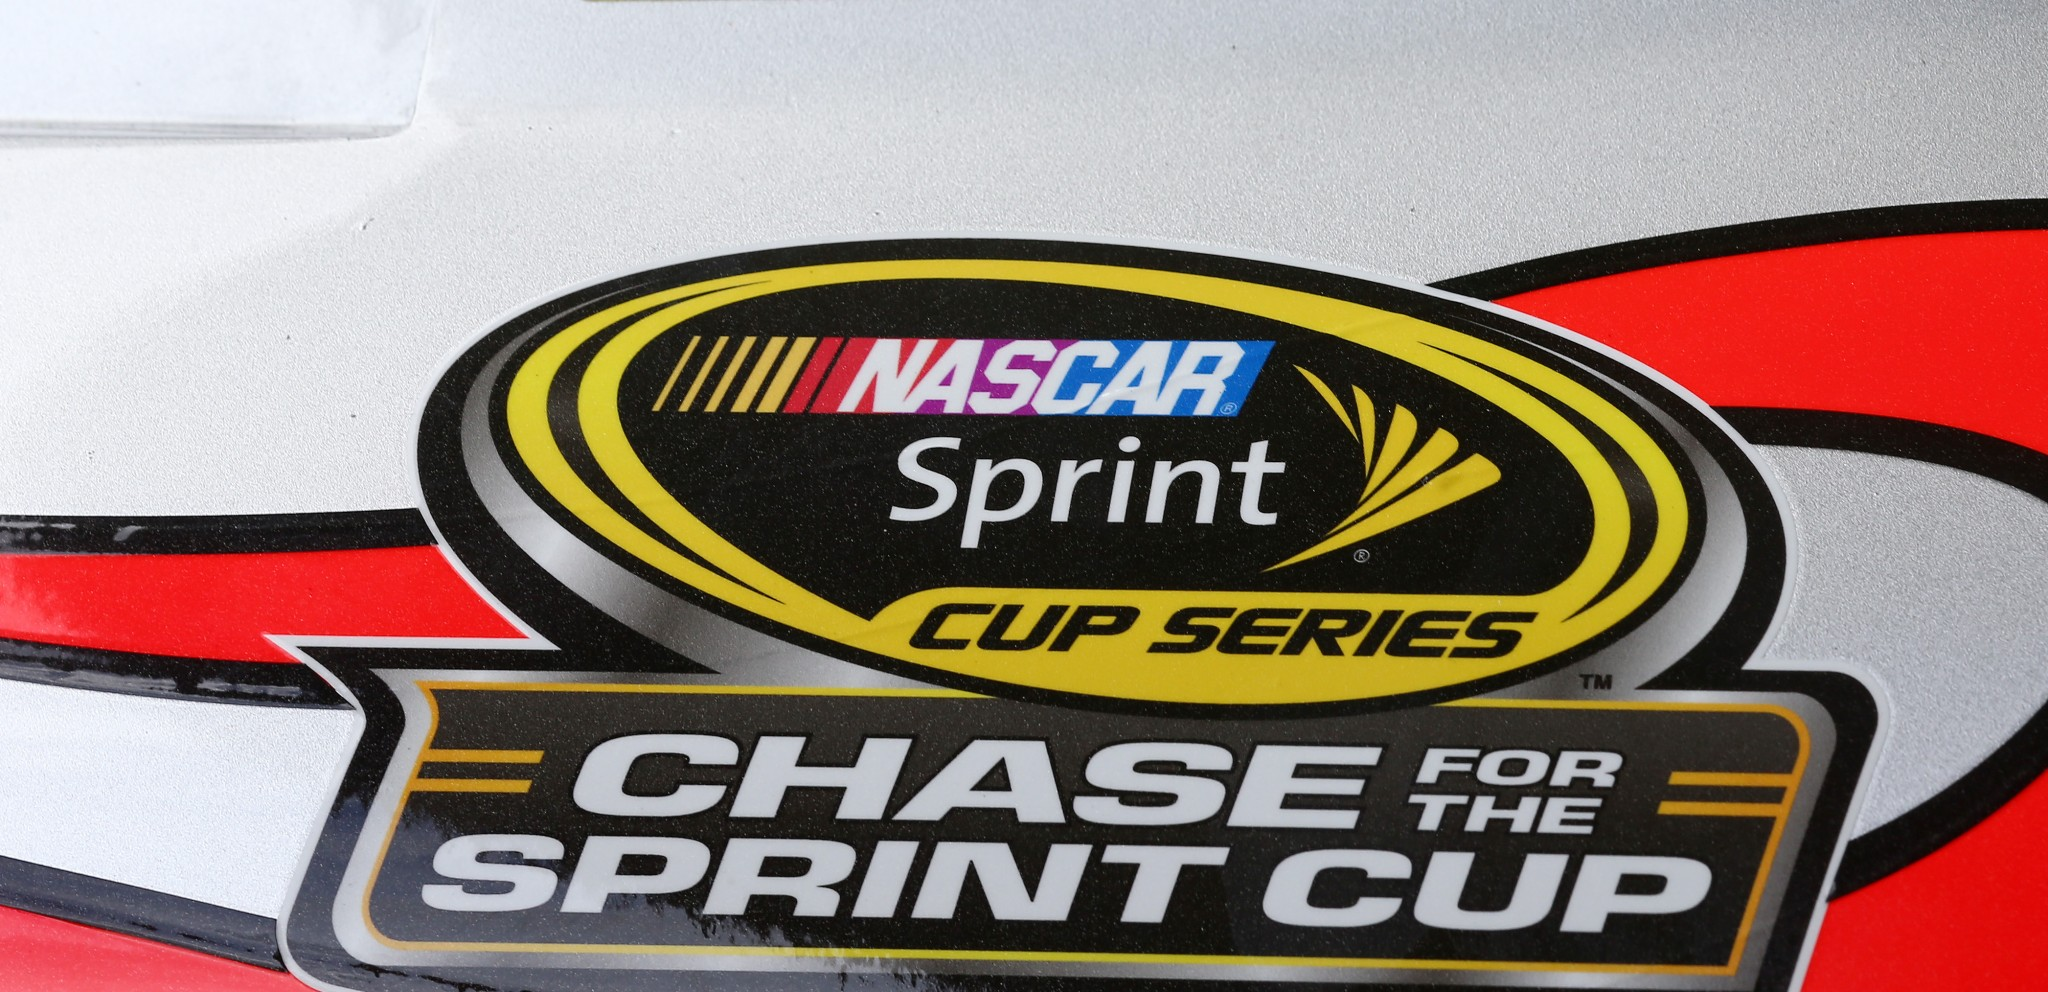 NASCAR has reportedly pitched potential sponsors without